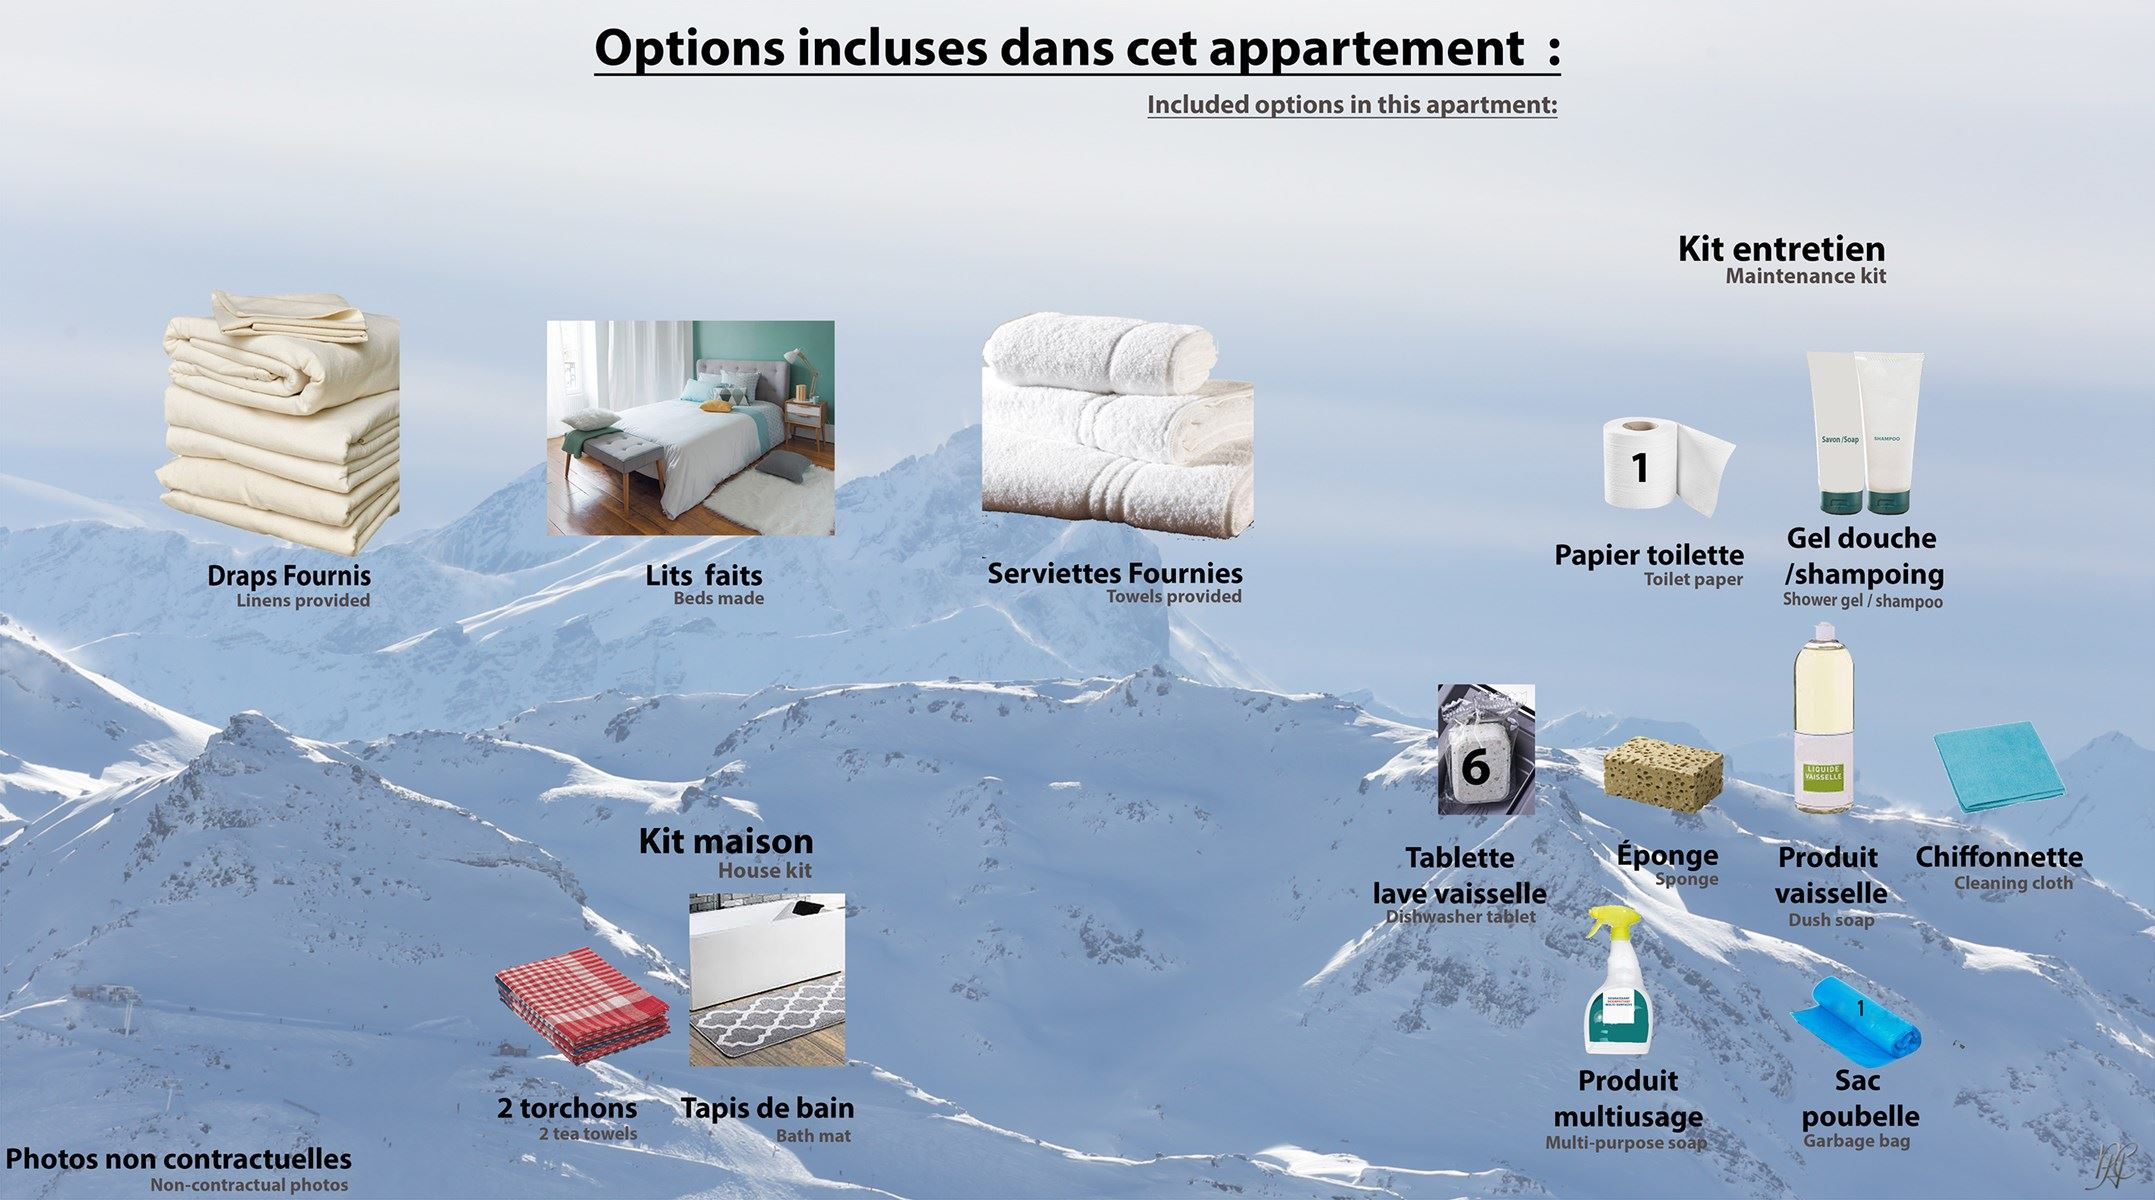 SILVERALP 217 / APPARTEMENT DUPLEX 4 PIECES 6 PERSONNES - 4 FLOCONS OR - ADA